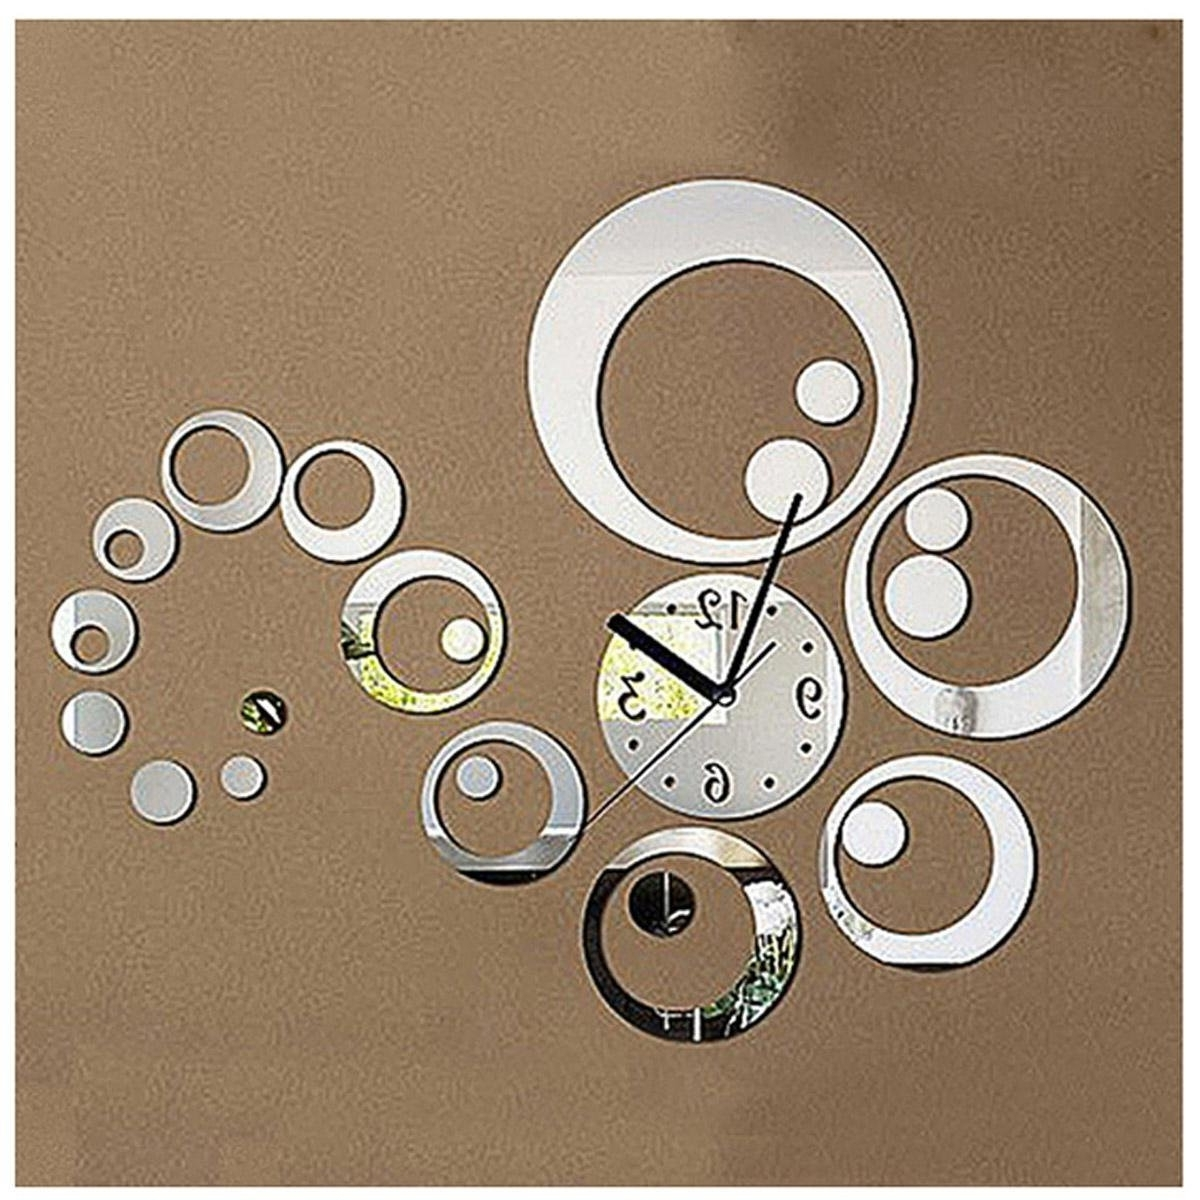 Small Round Mirrors Wall Art Regarding Most Recently Released Circle Mirror Removable Decal Vinyl Art Wall Sticker Home Decor (View 11 of 15)